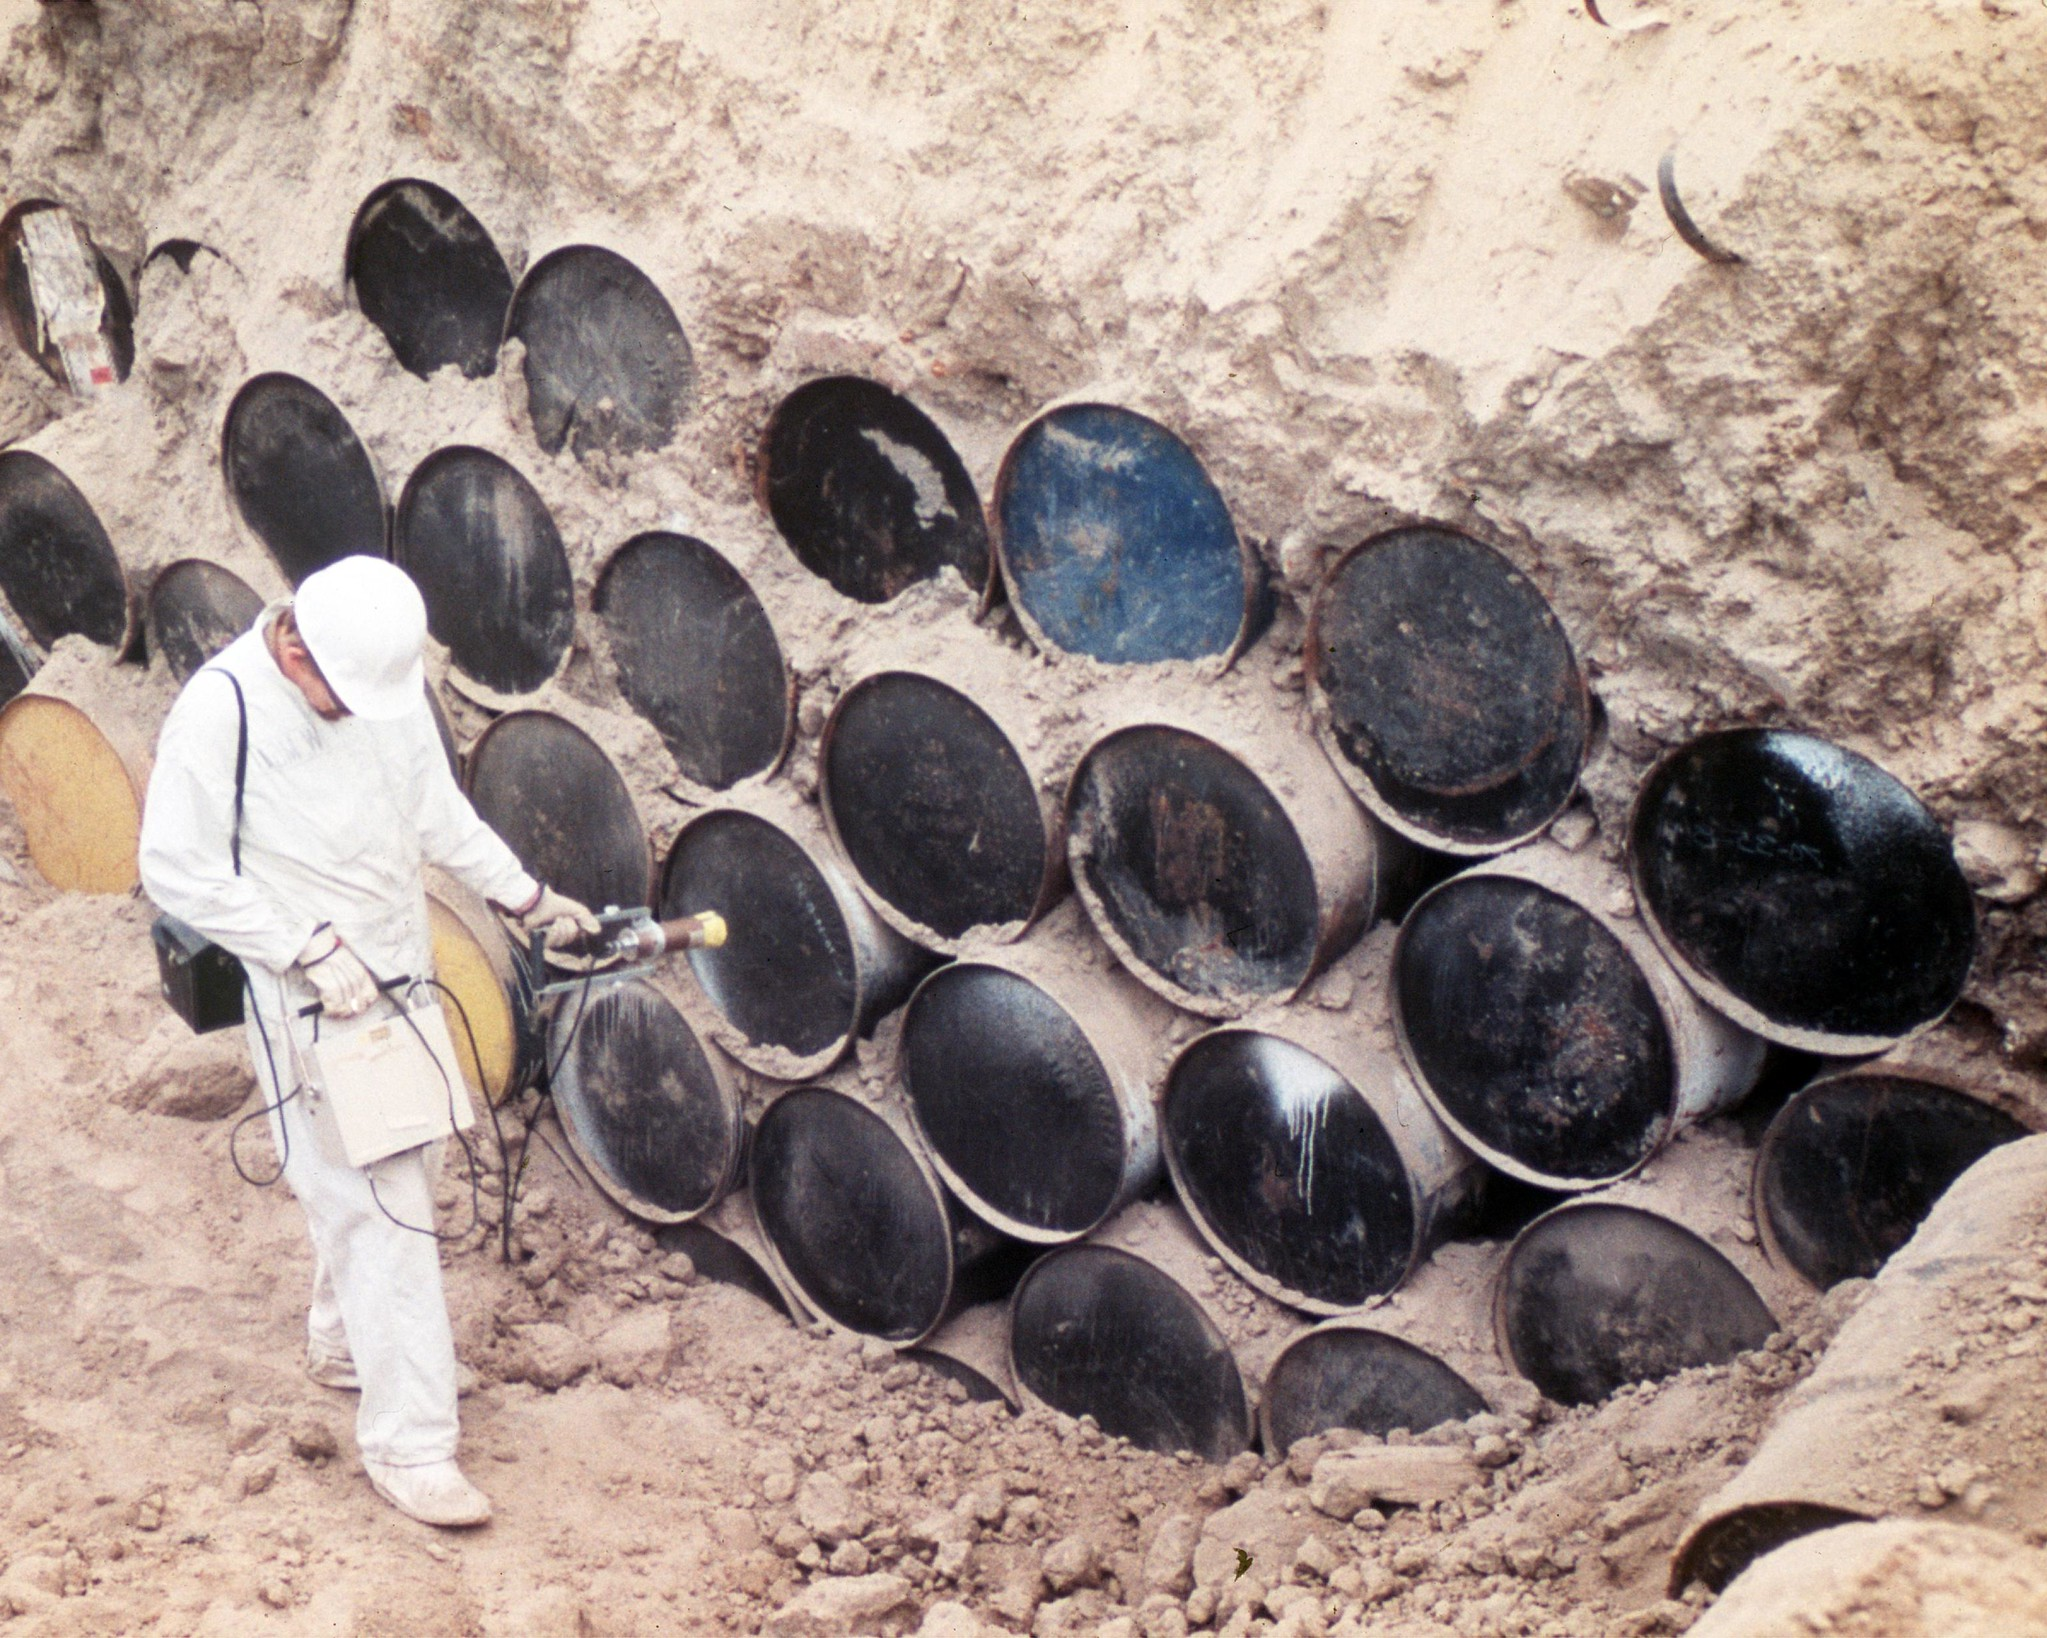 A male-presenting figure in white coveralls with a white hardhat and white gloves holds a geiger counter to the lids of waste storage drums piled and partially buried in what appears to be sand.